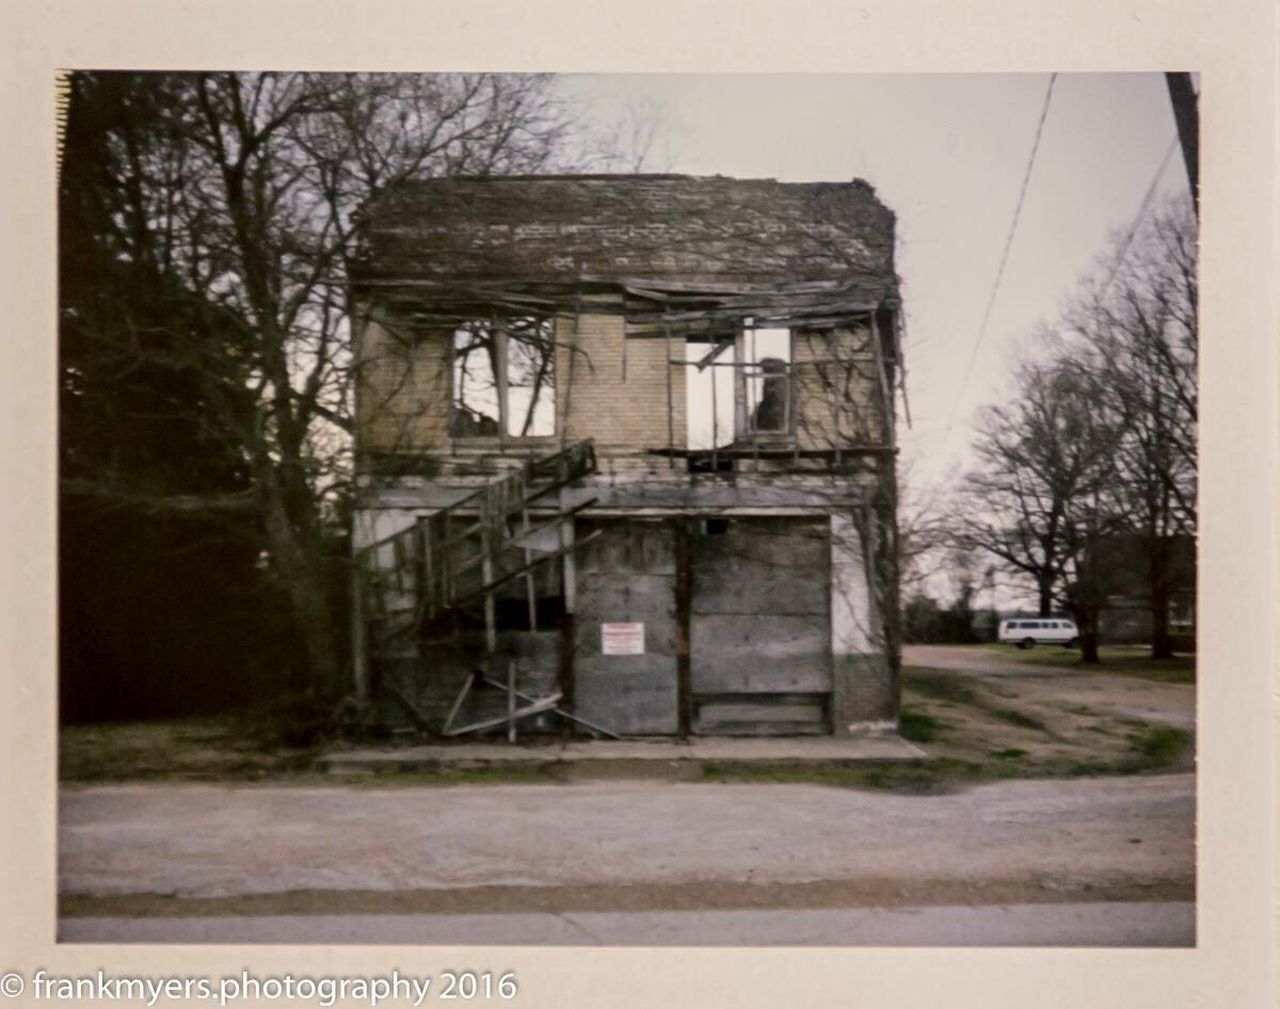 Bryant's Grocery Abandoned Building Exterior Polaroid